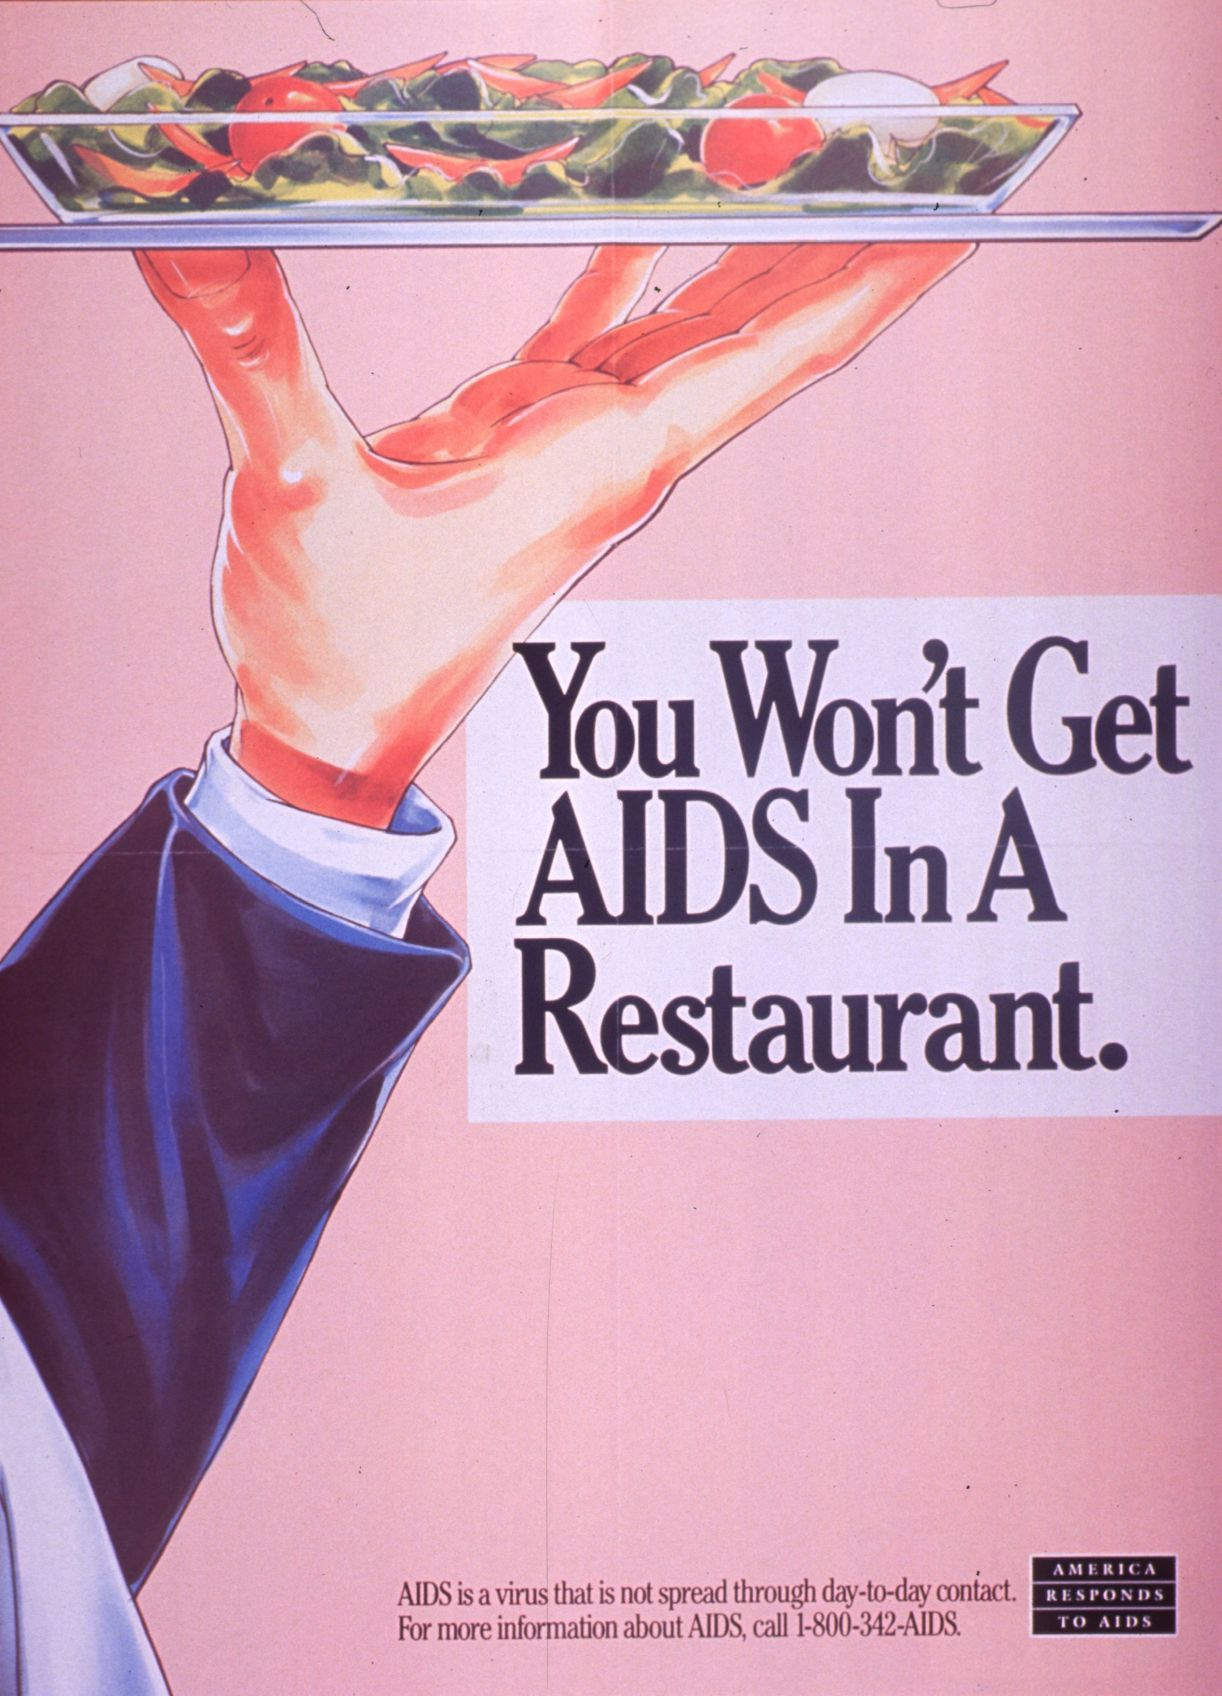 postandcourier.com - Hanna Raskin hraskin@postandcourier.com - Hospitality industry's response to AIDS pandemic offers lessons for SC restaurateurs today